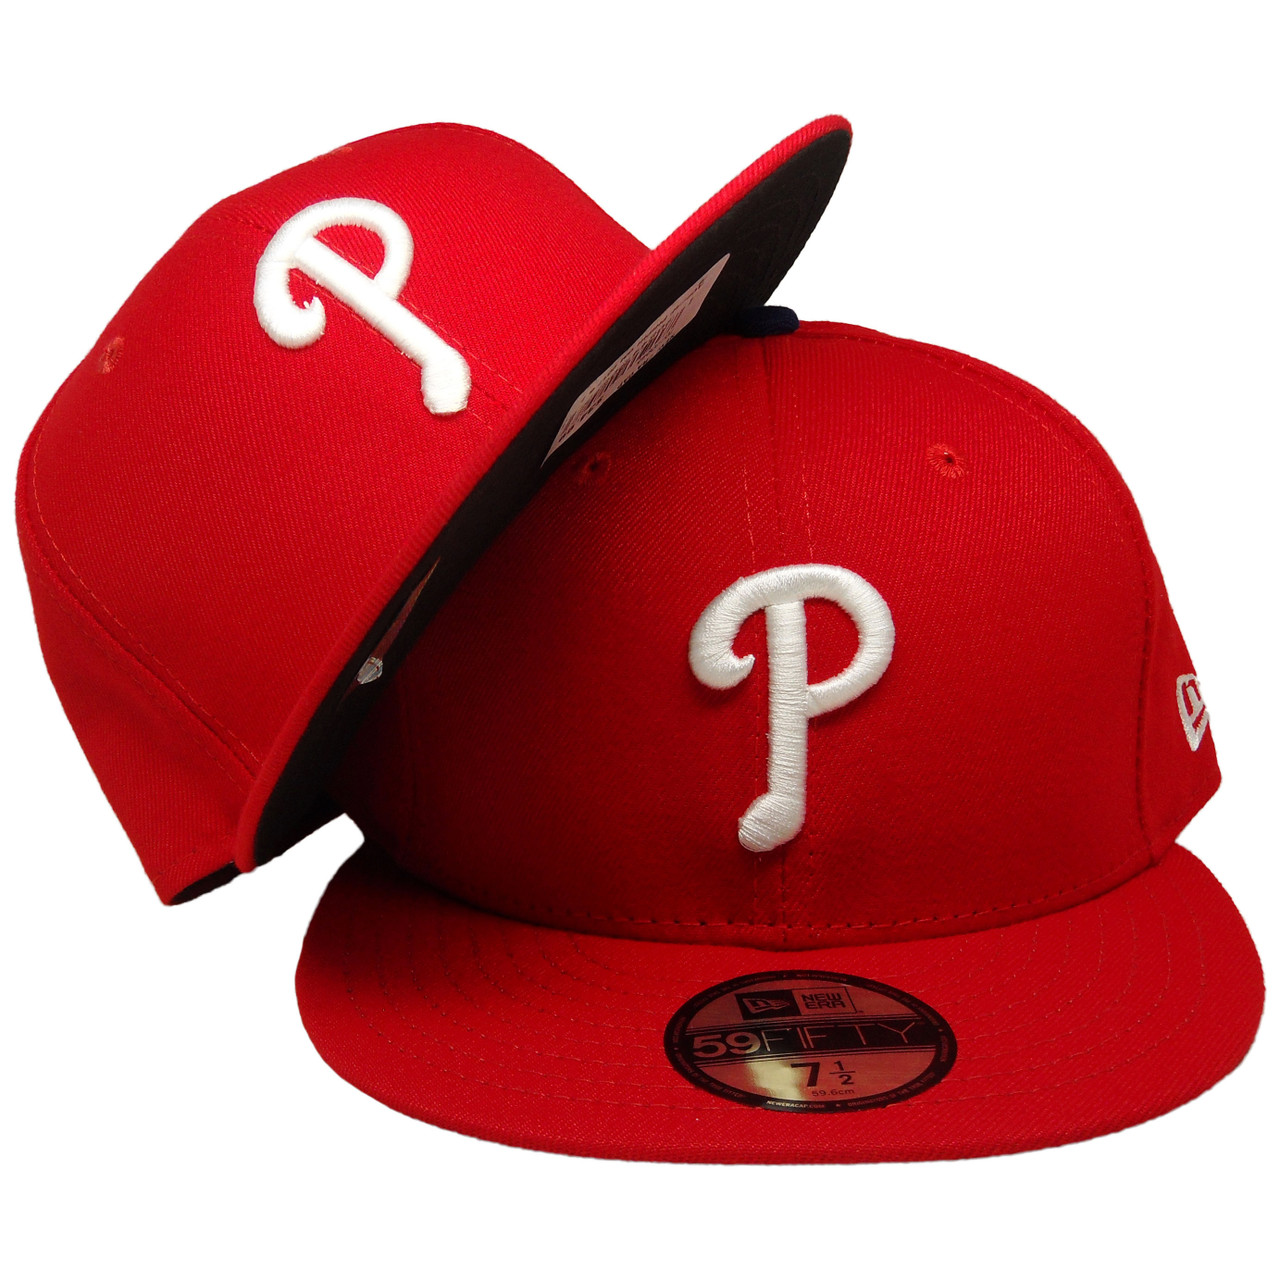 sneakers for cheap d0789 cbe66 Philadelphia Phillies New Era Home Onfield Fitted Hat - Red, White, Light  Royal